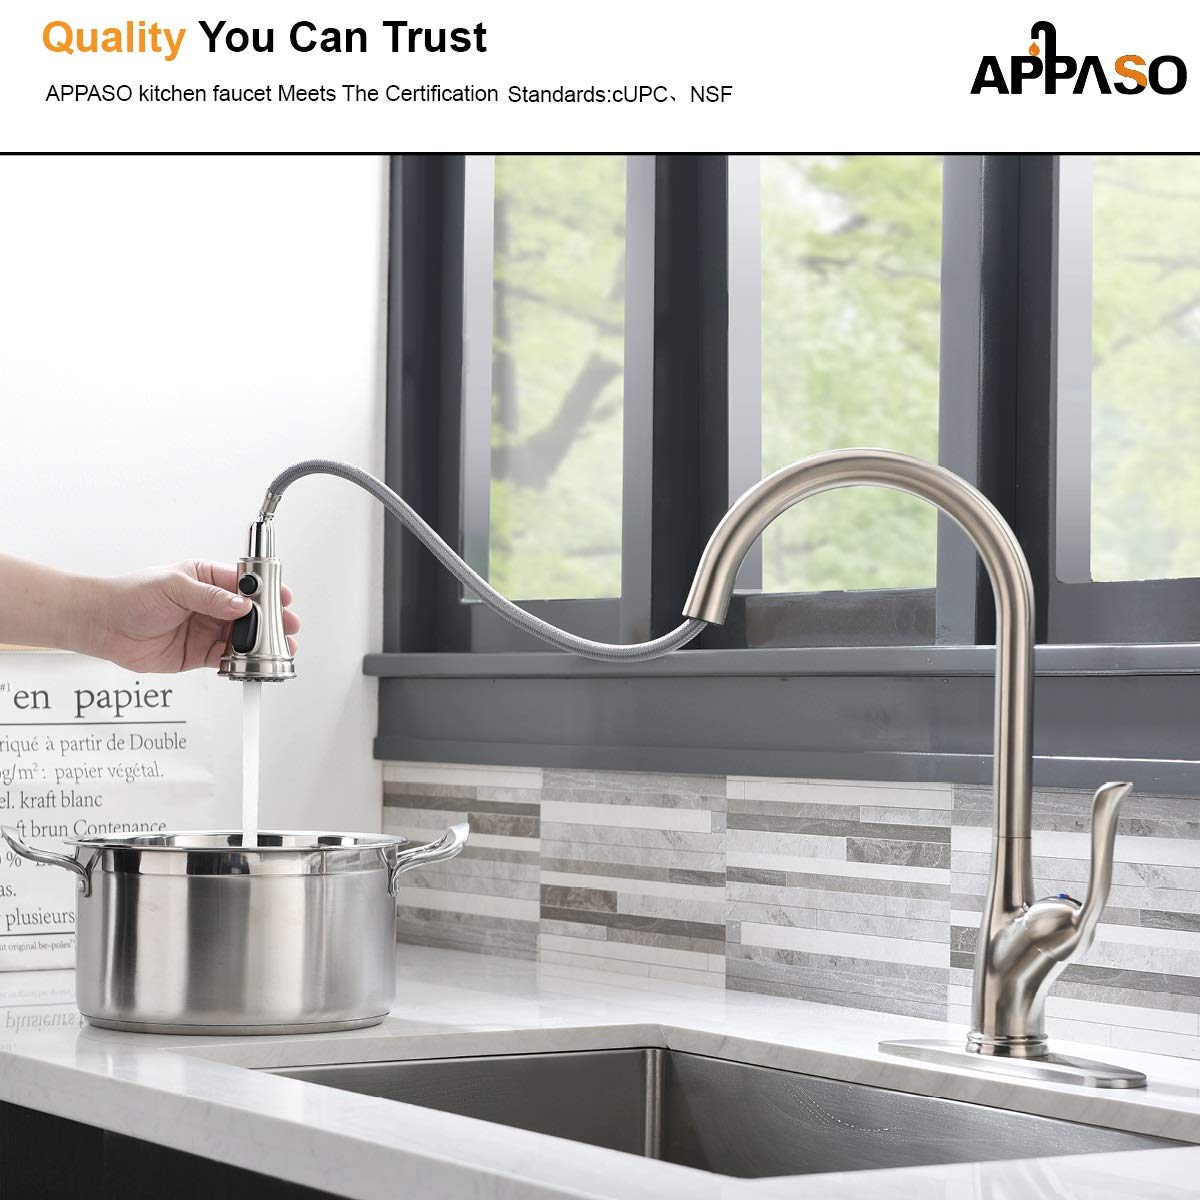 APPASO Single Handle Pull Down Kitchen Faucet with Sprayer, Stainless Steel Brushed Nickel High Arc Single Hole Pull Out Spray Head Kitchen Sink Faucet with Escutcheon by APPASO (Image #6)